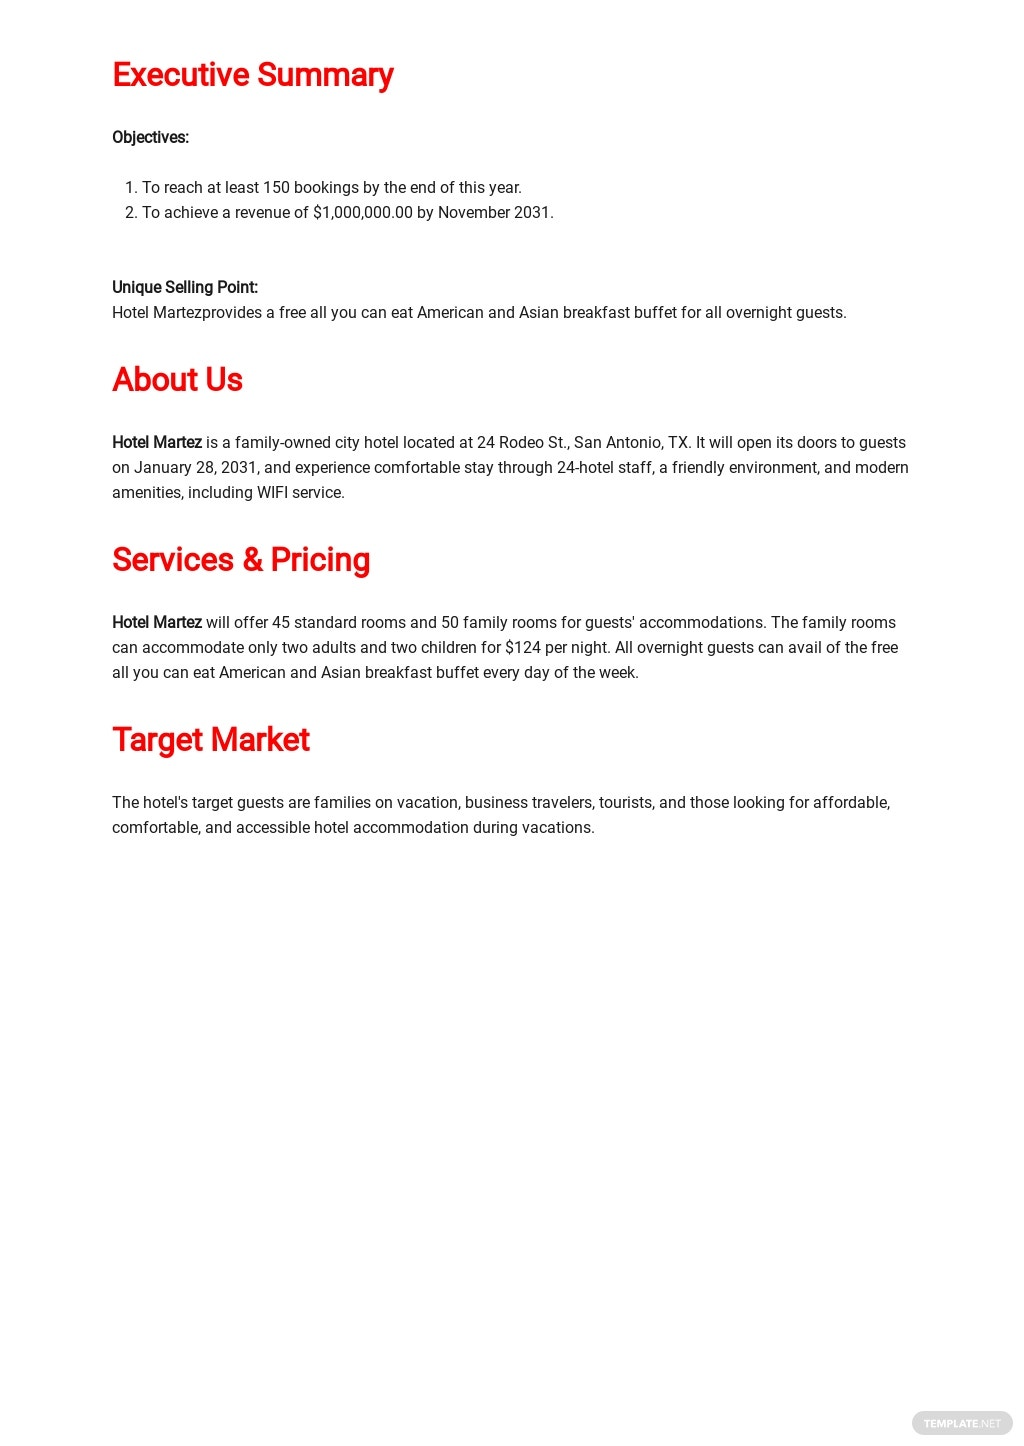 Hotel Business Plan Template [Free PDF] - Google Docs, Word, Apple Pages